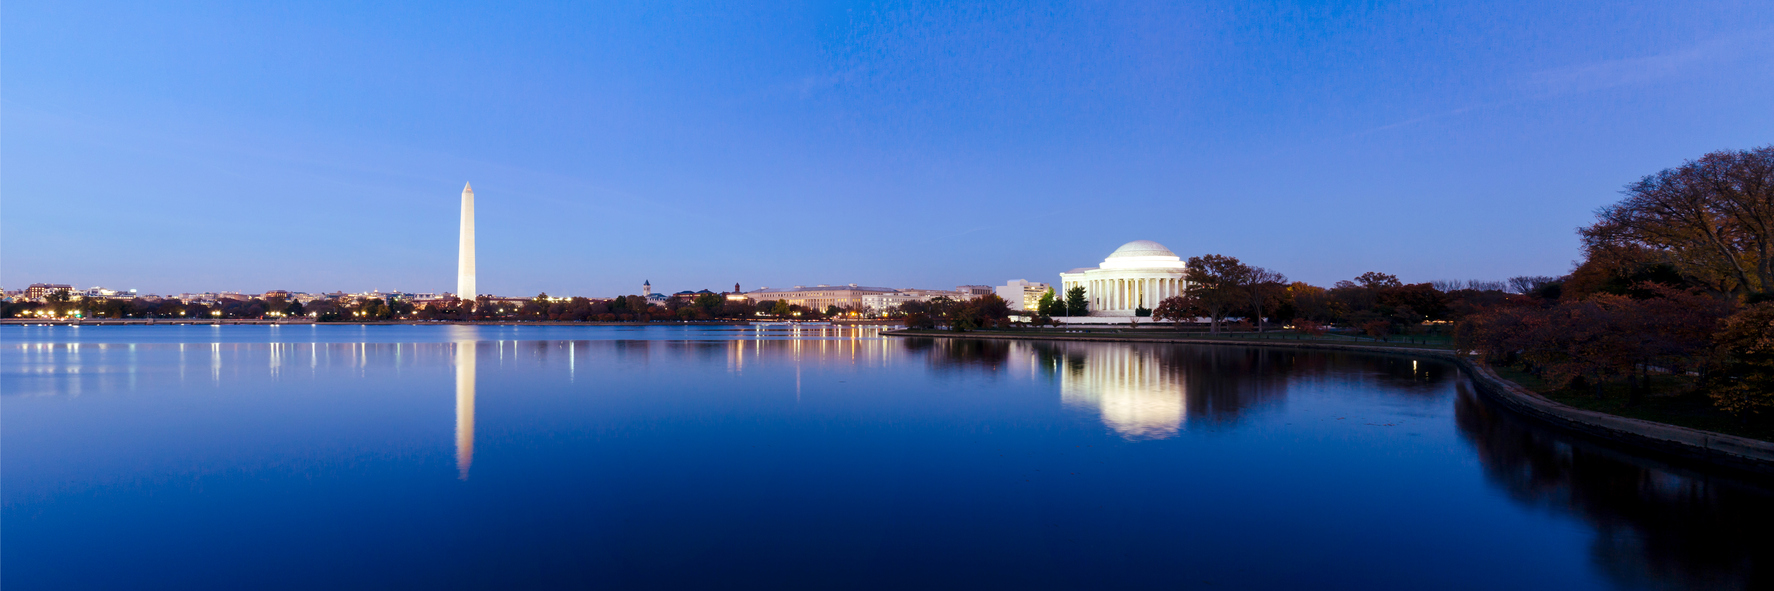 District Of Columbia Registered Agent TM